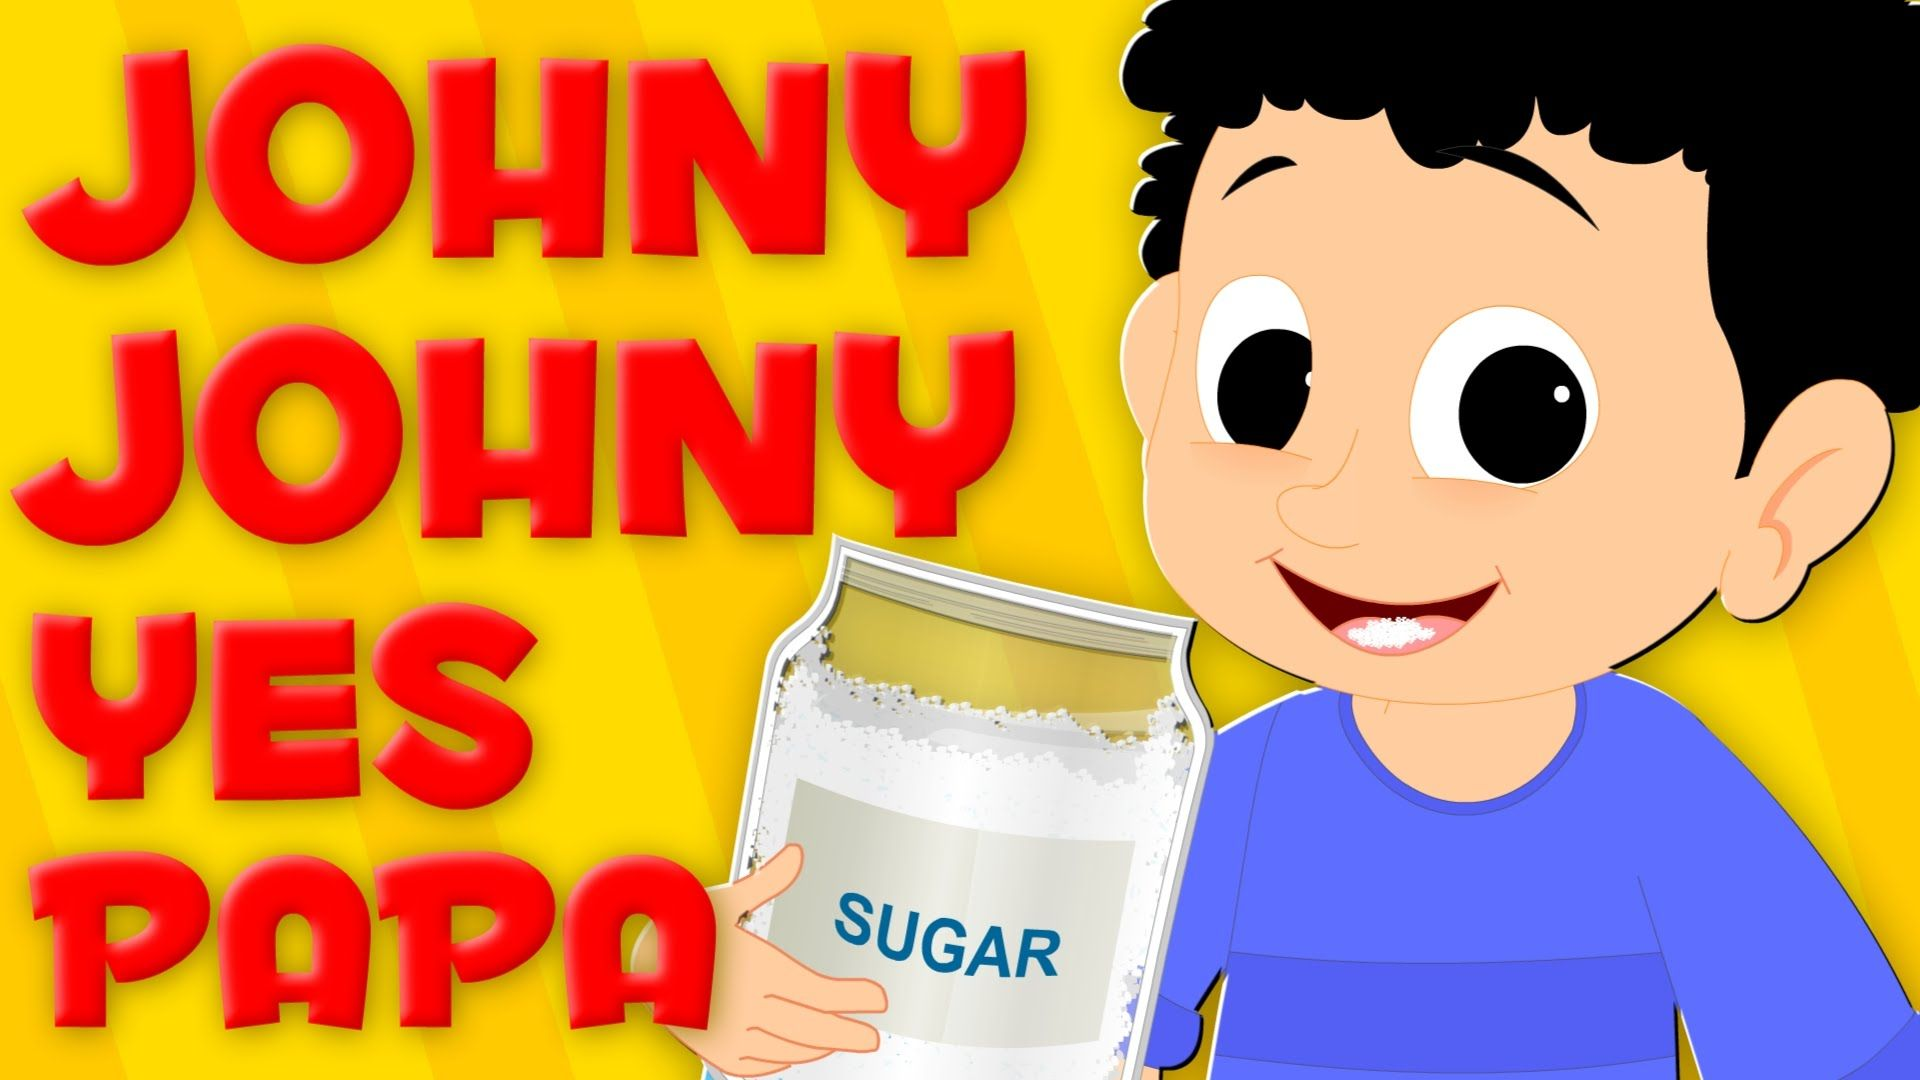 Johny Johny Yes Papa Nursery Rhymes For Baby Kids Songs For Childrens Rhymes For Babies Kids Songs Nursery Rhymes